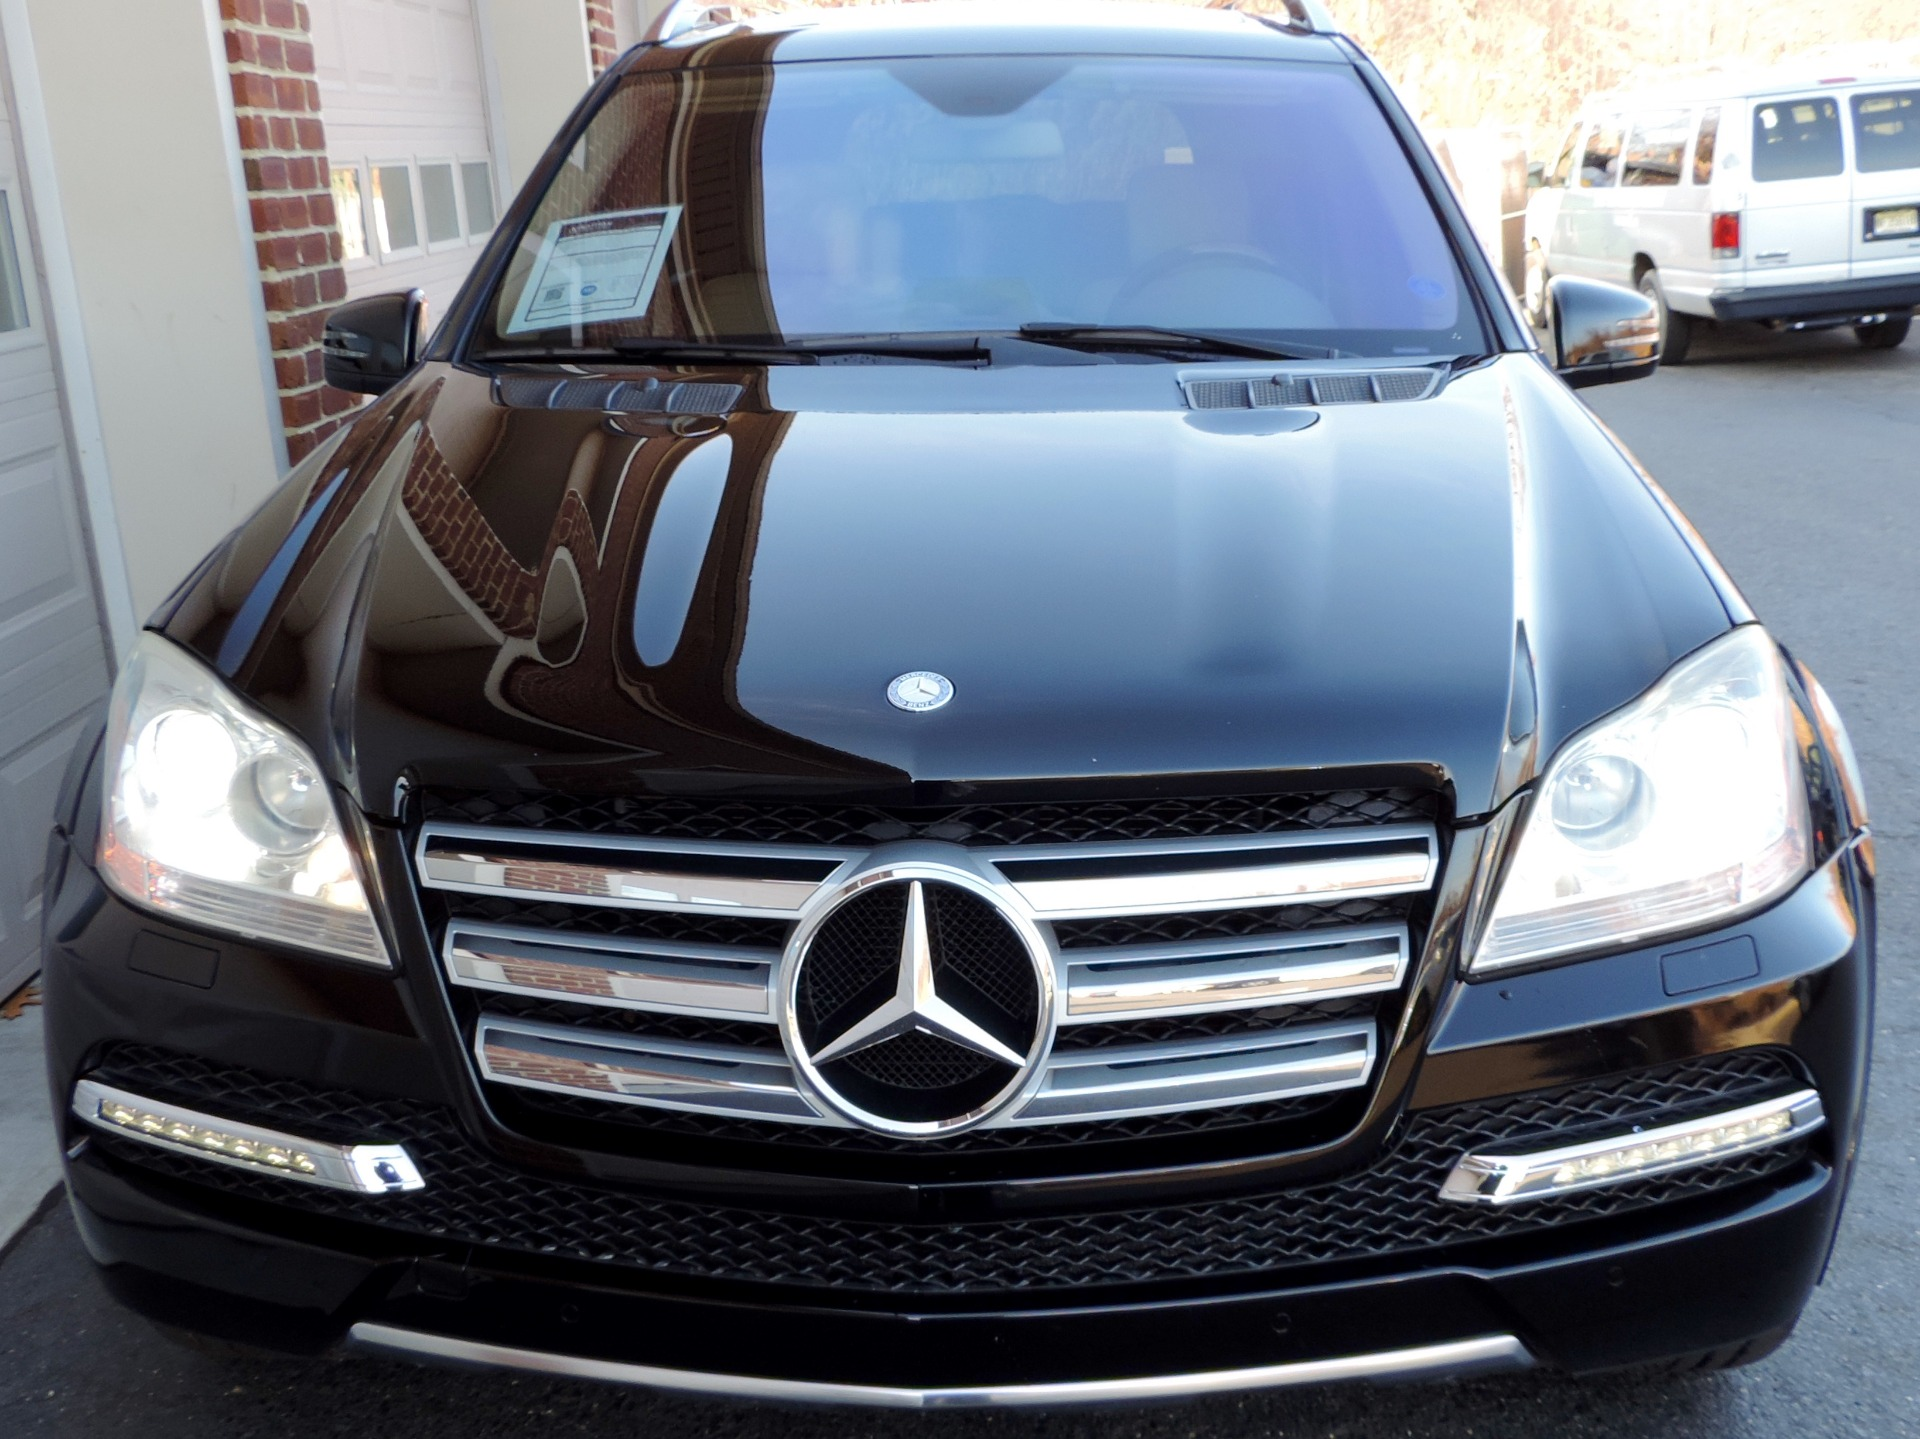 2012 mercedes benz gl class gl 550 4matic stock 777509 for 2012 mercedes benz gl450 for sale